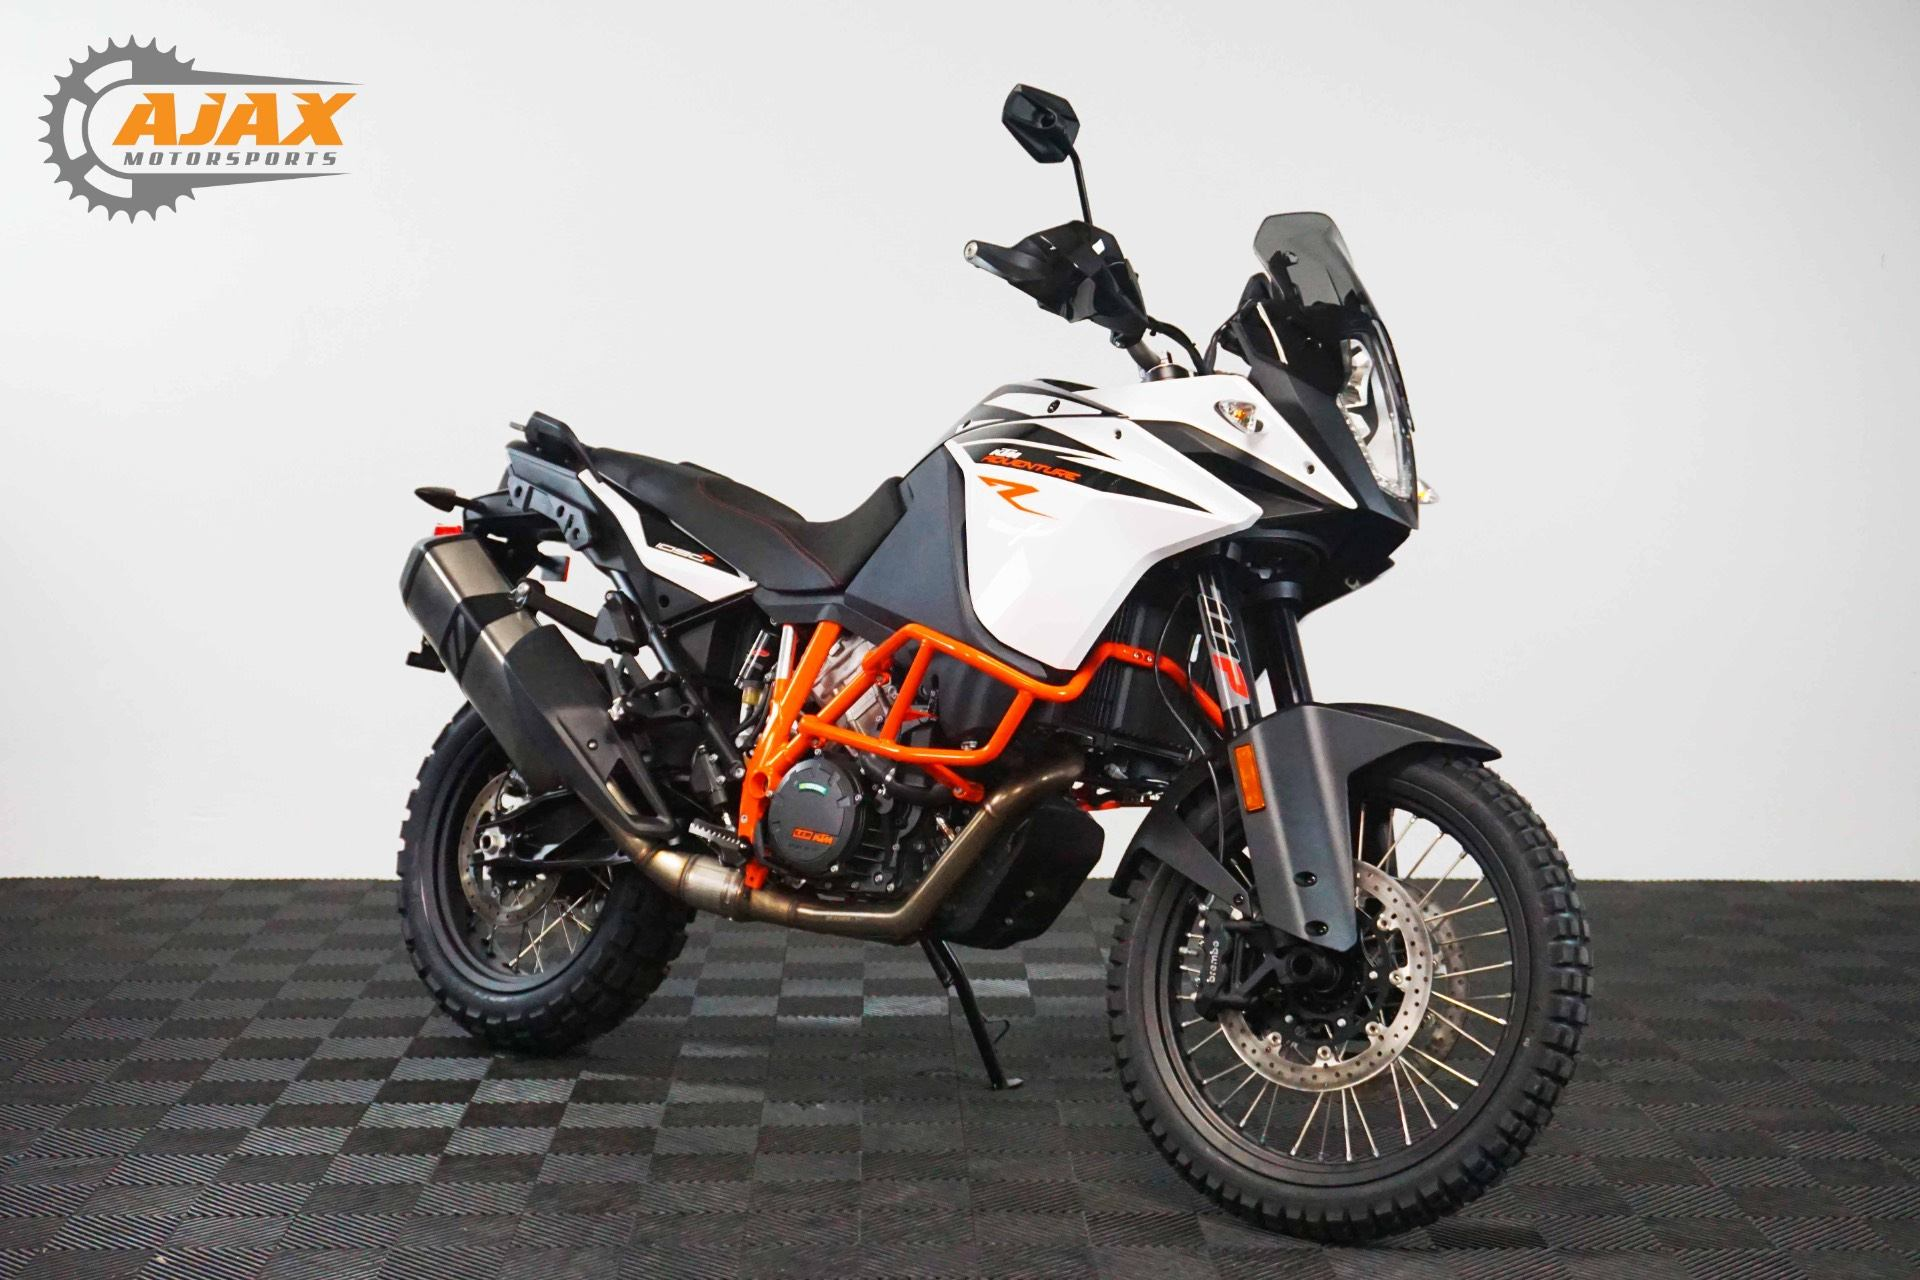 2018 KTM 1090 Adventure R for sale 13